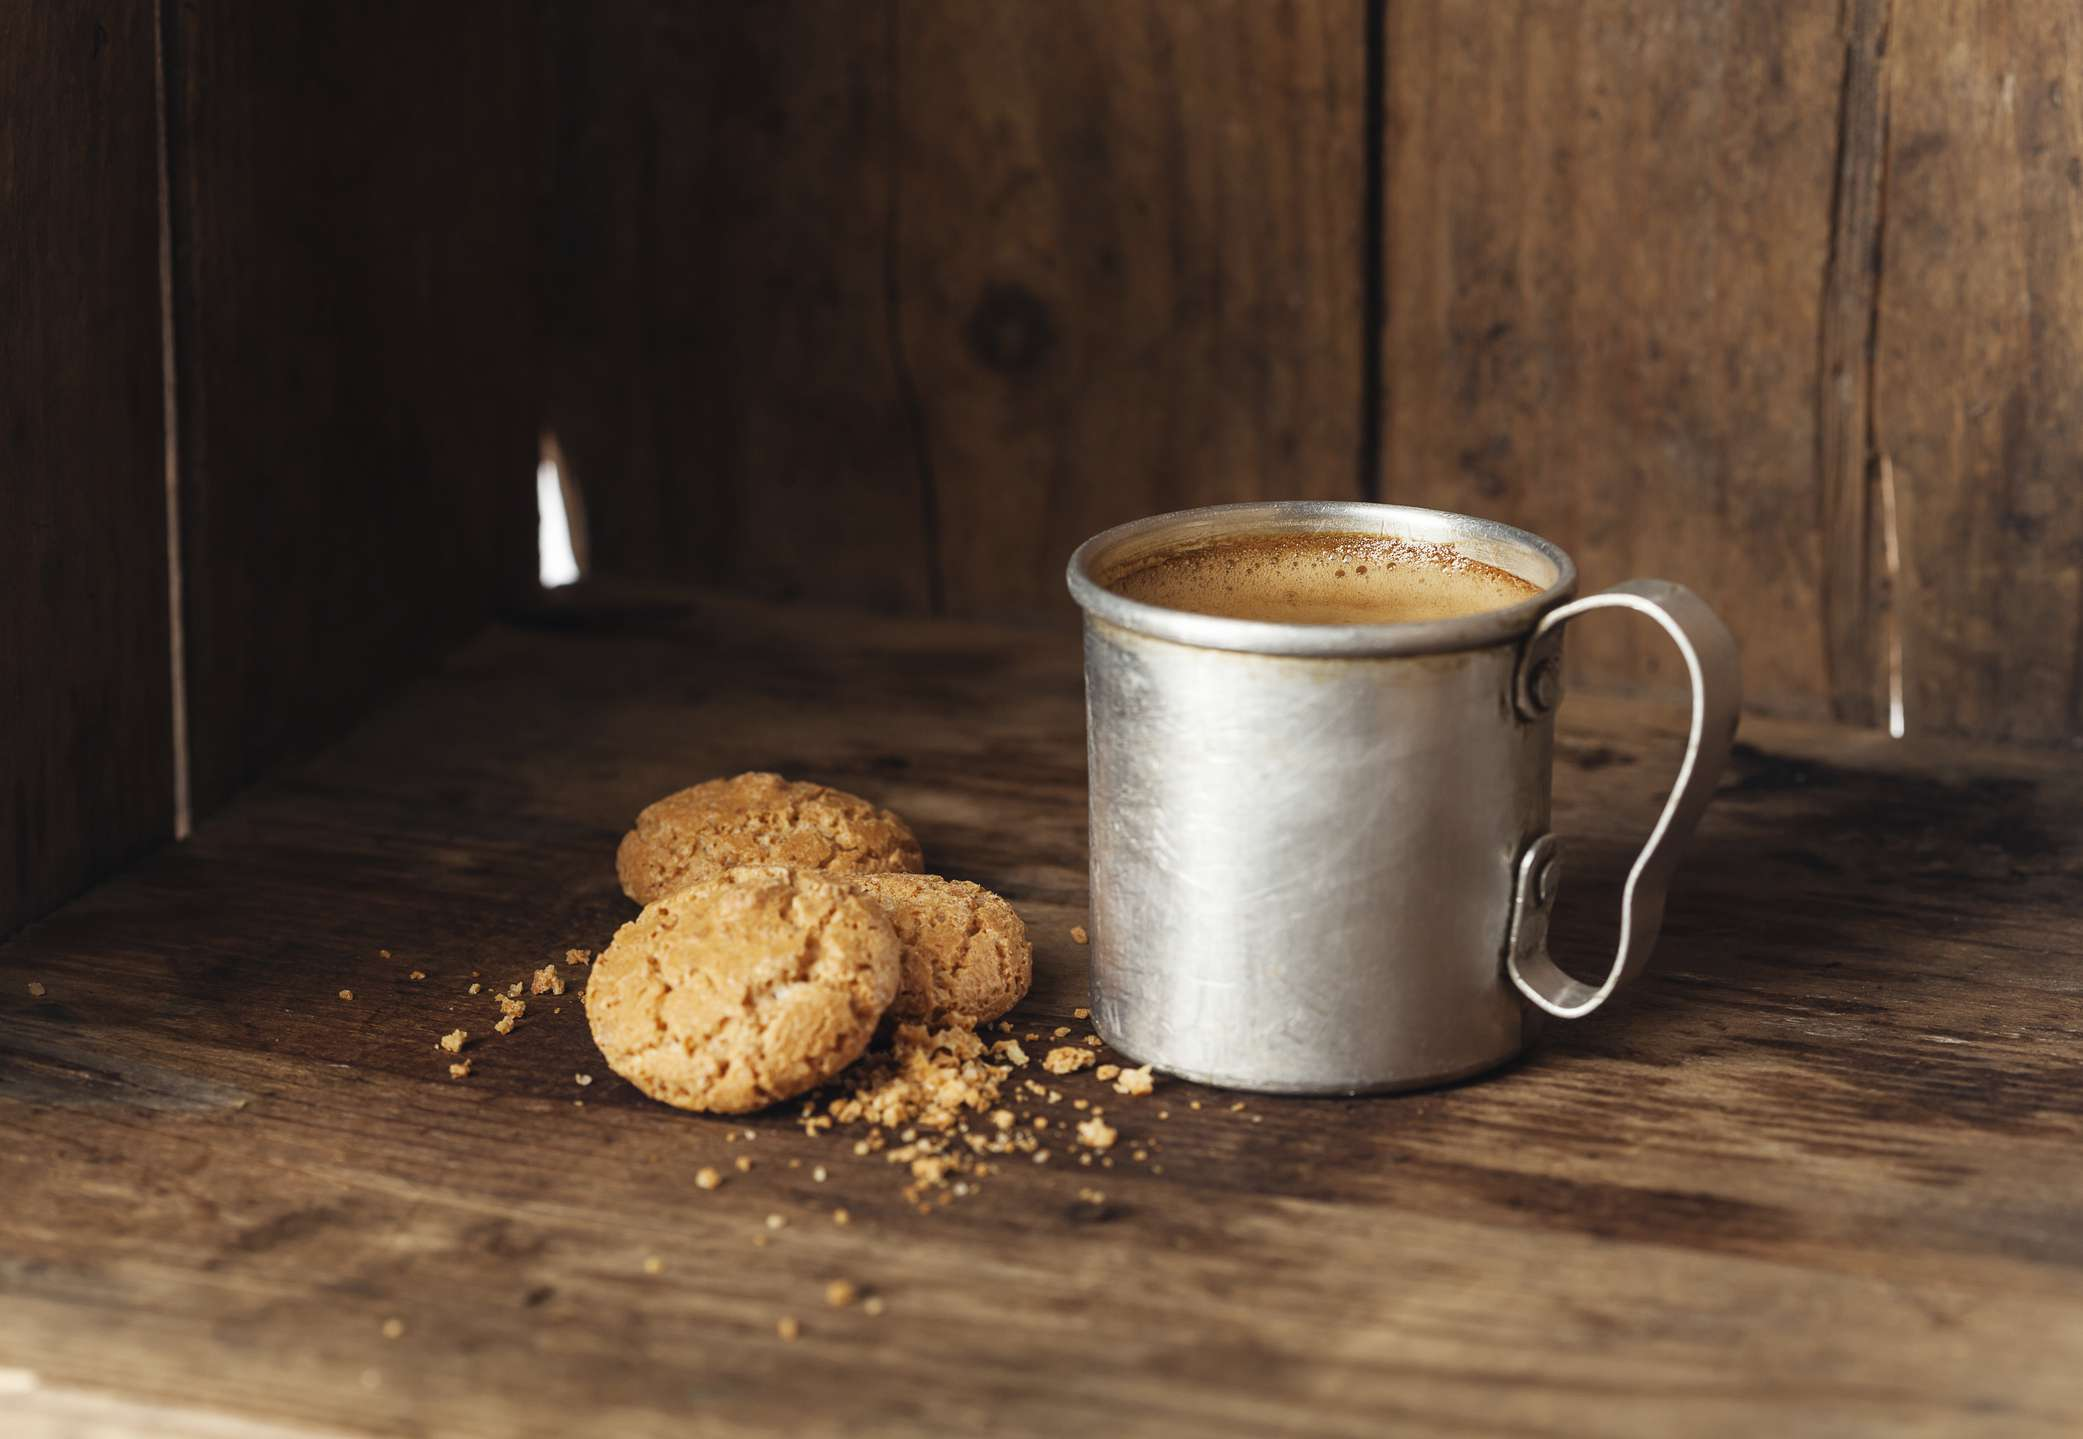 Amaretti biscuits with coffee